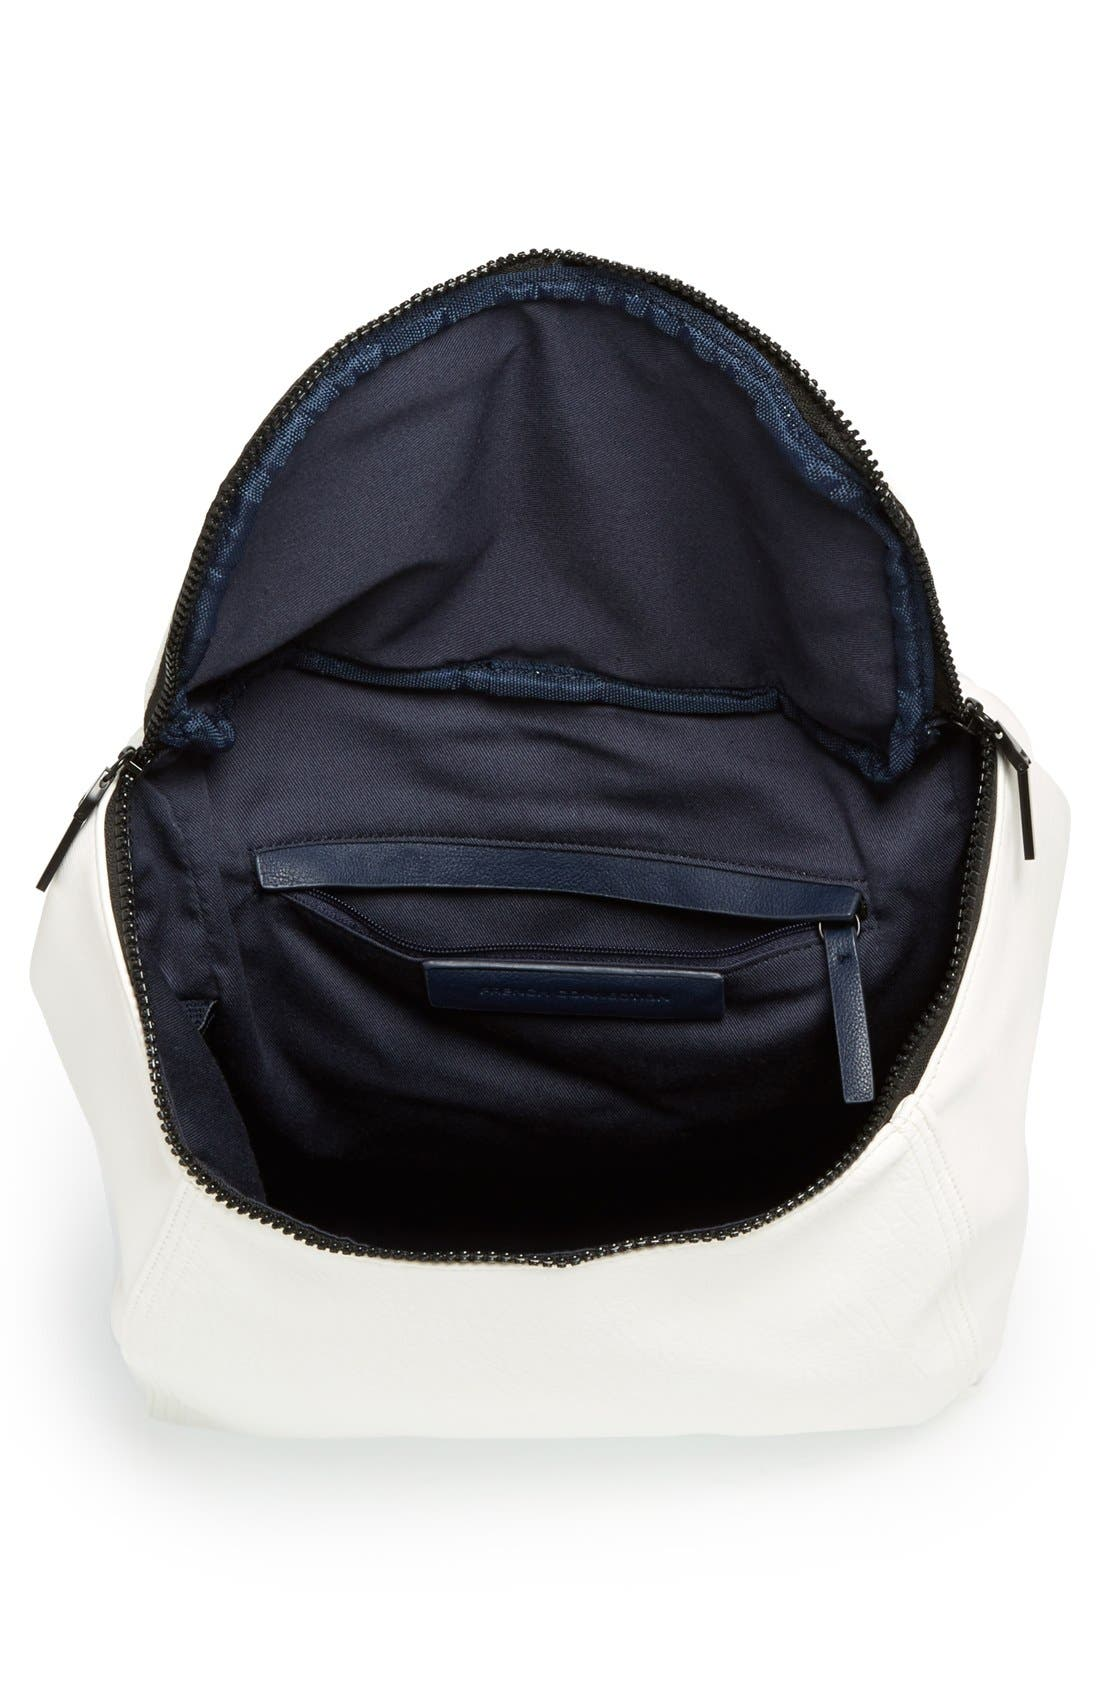 Alternate Image 3  - French Connection 'Prim Lady' Faux Leather Backpack